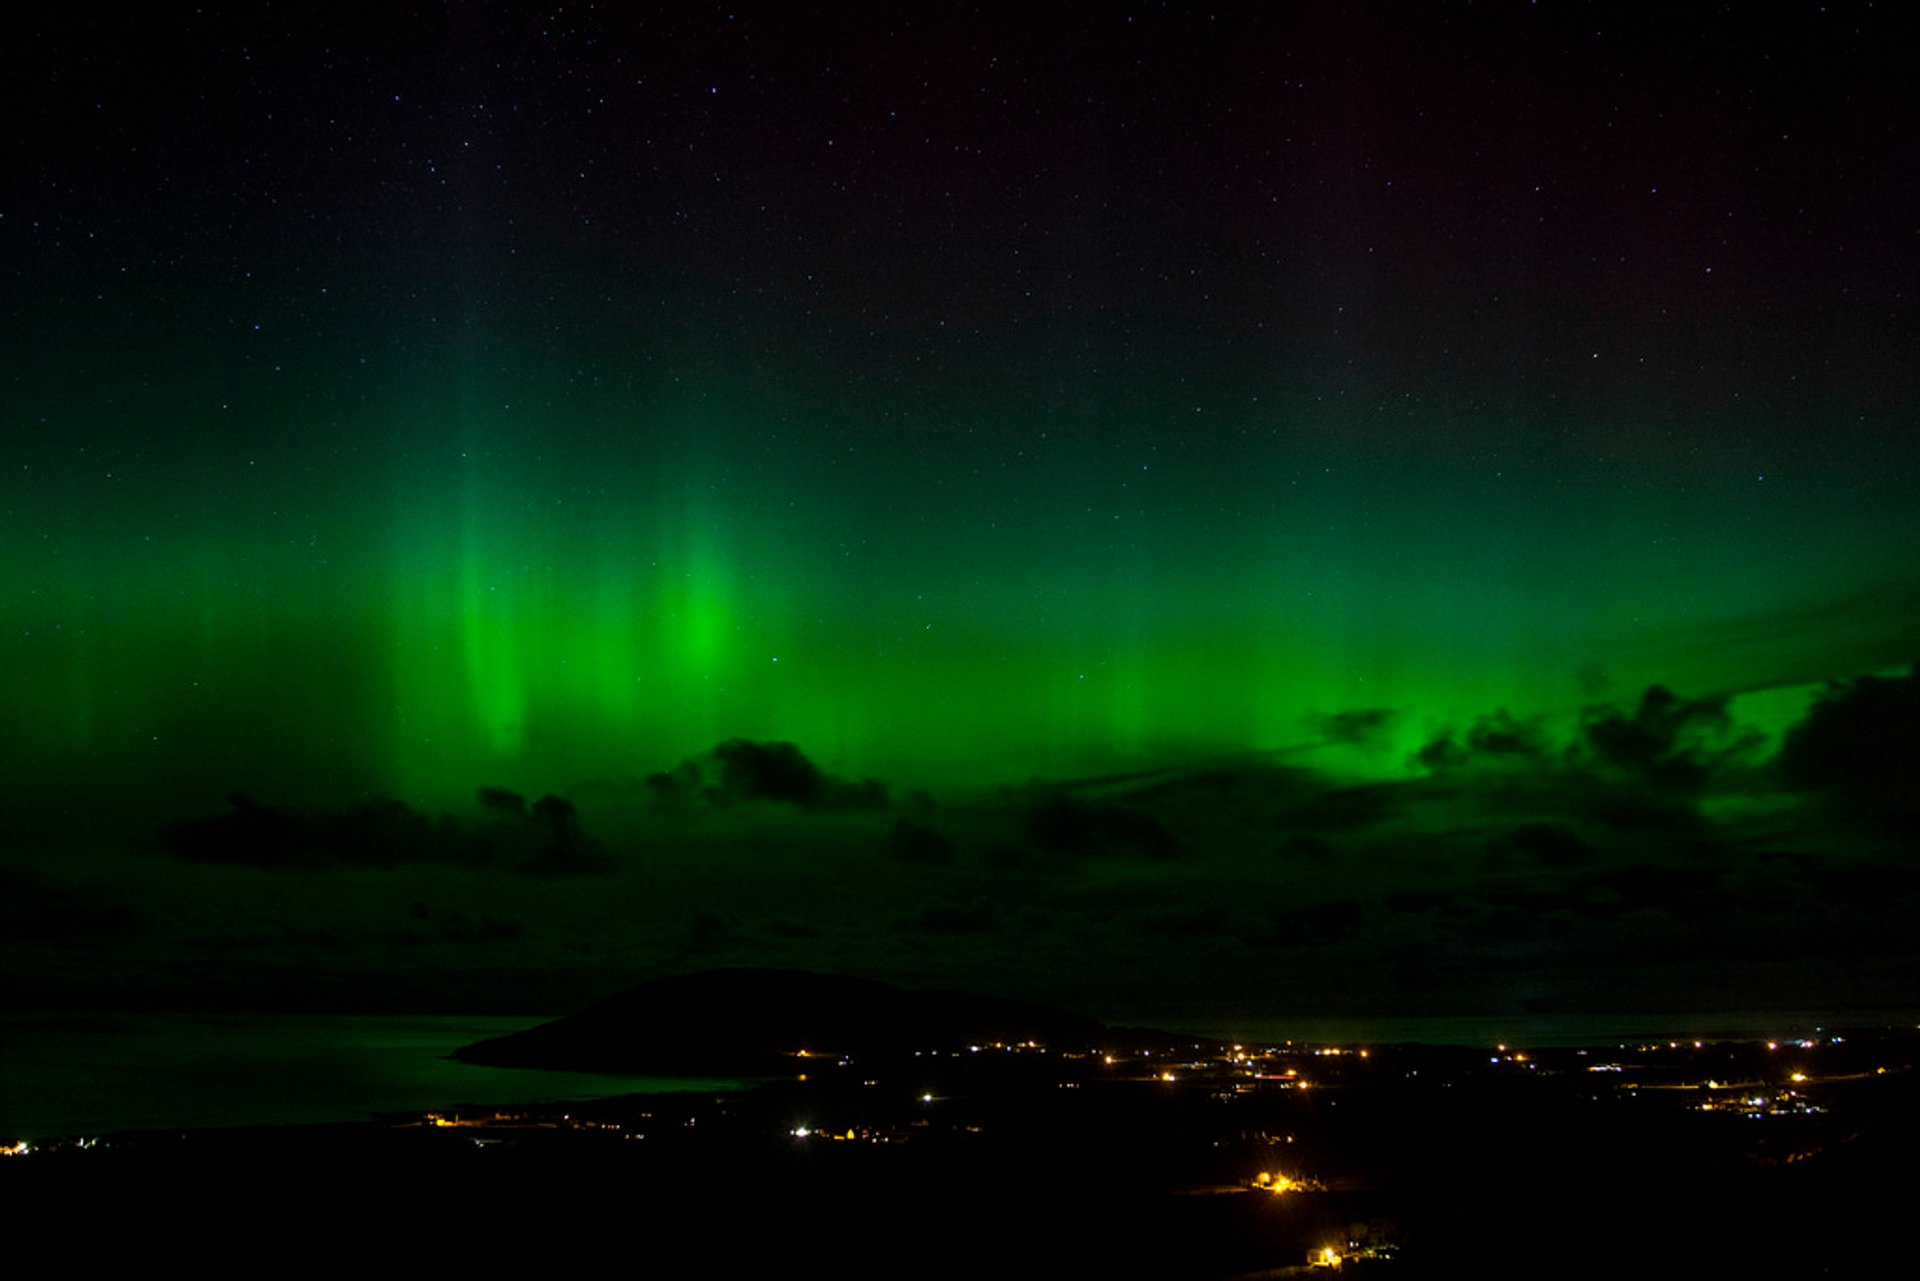 Fading away northern lights over Urris valley to the west of the parish of Clonmany, Co Donegal, Ireland 2019